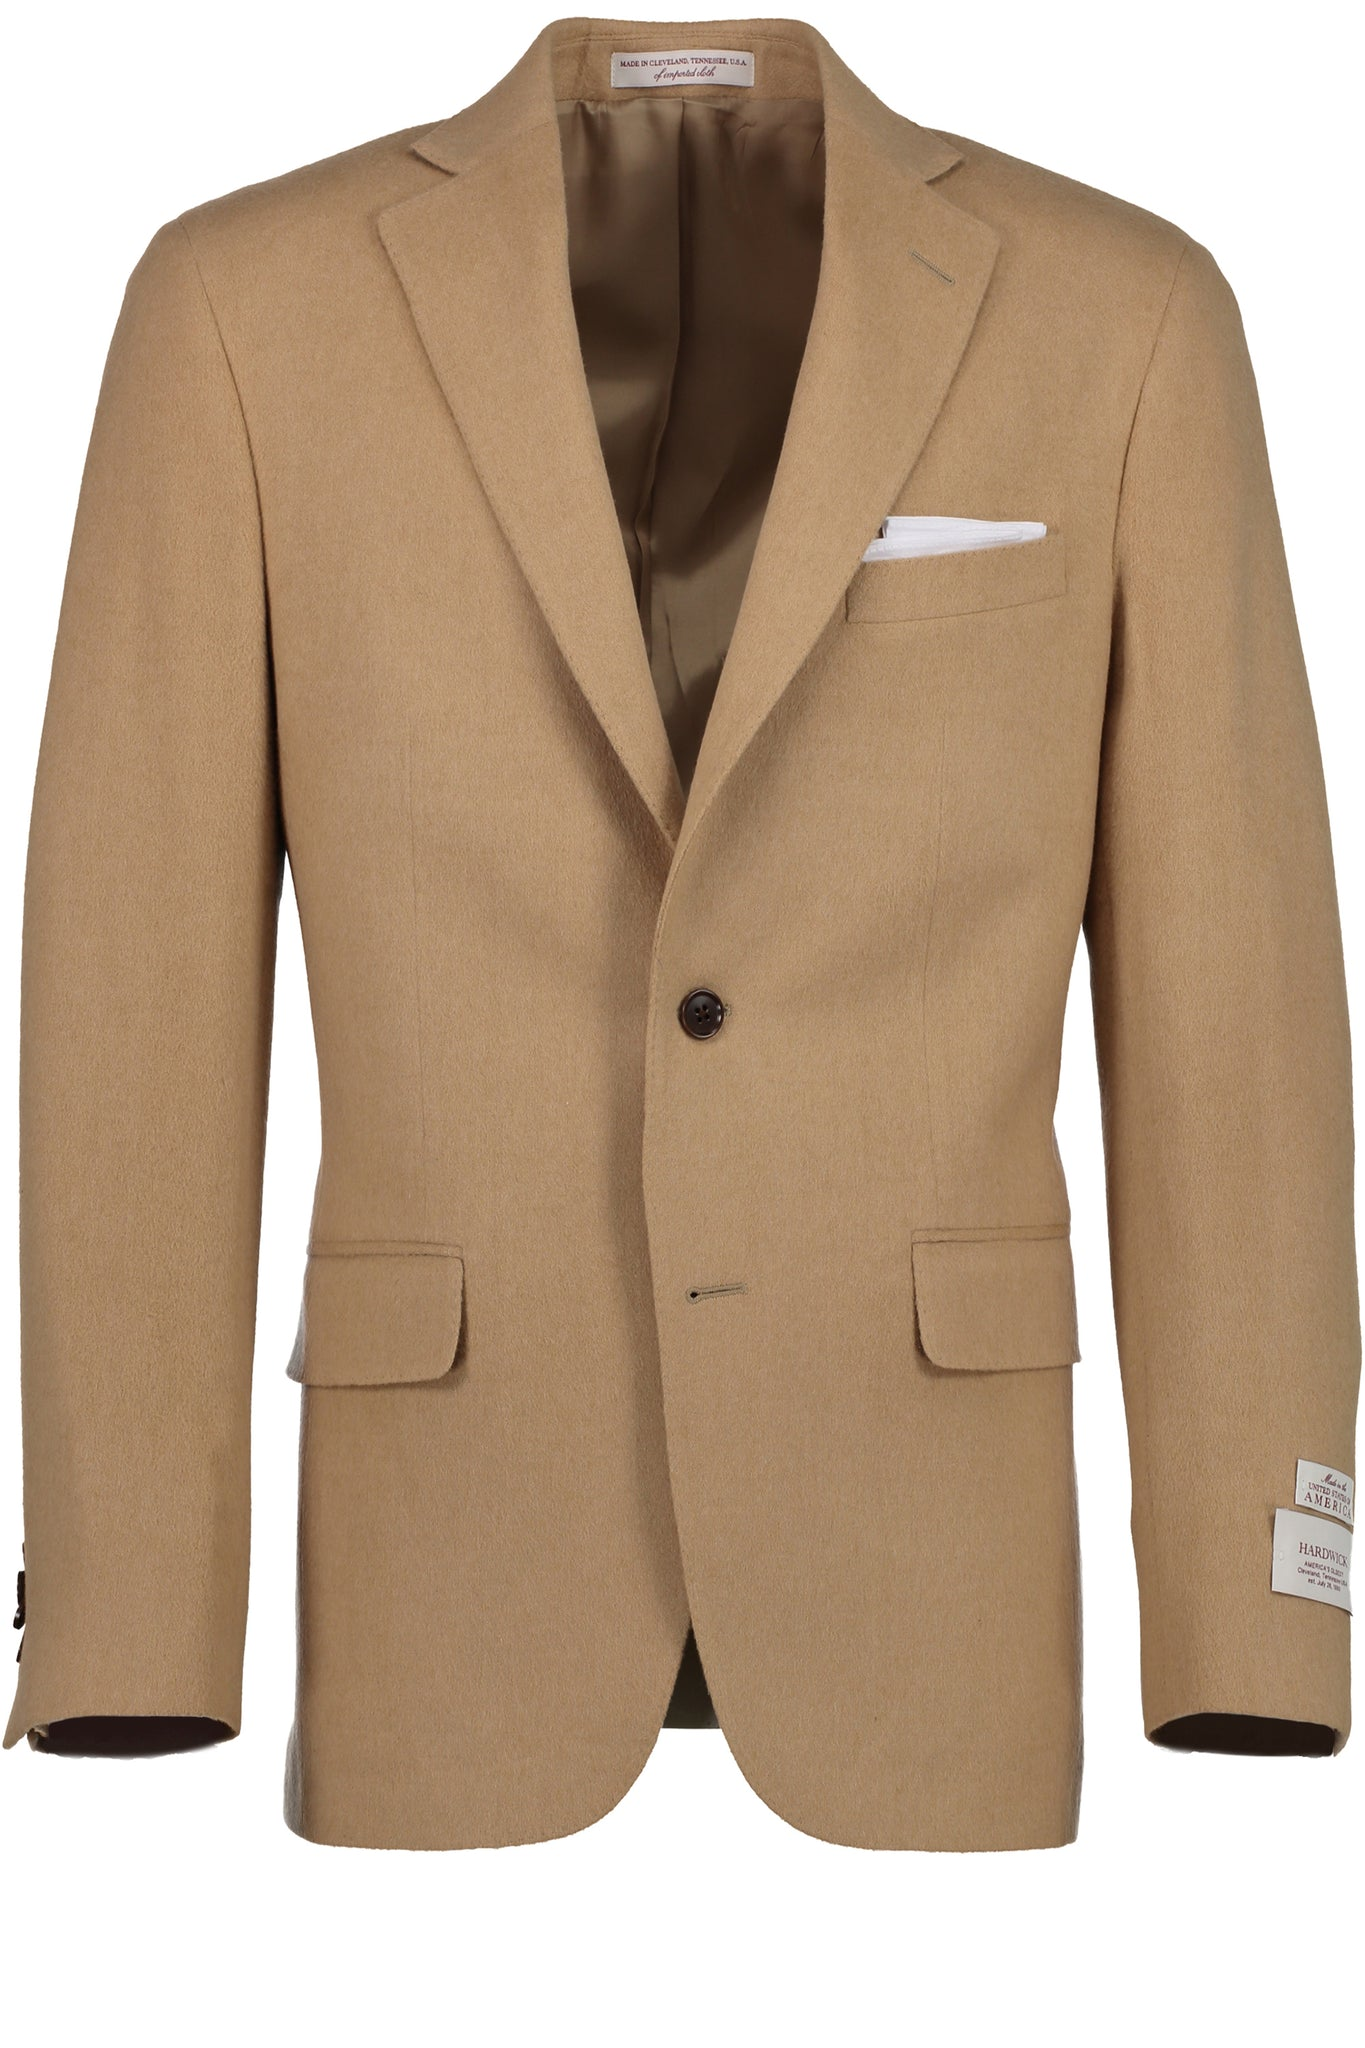 Modern Fit 100% Camel Hair Sport Coat -  Hardwick.com